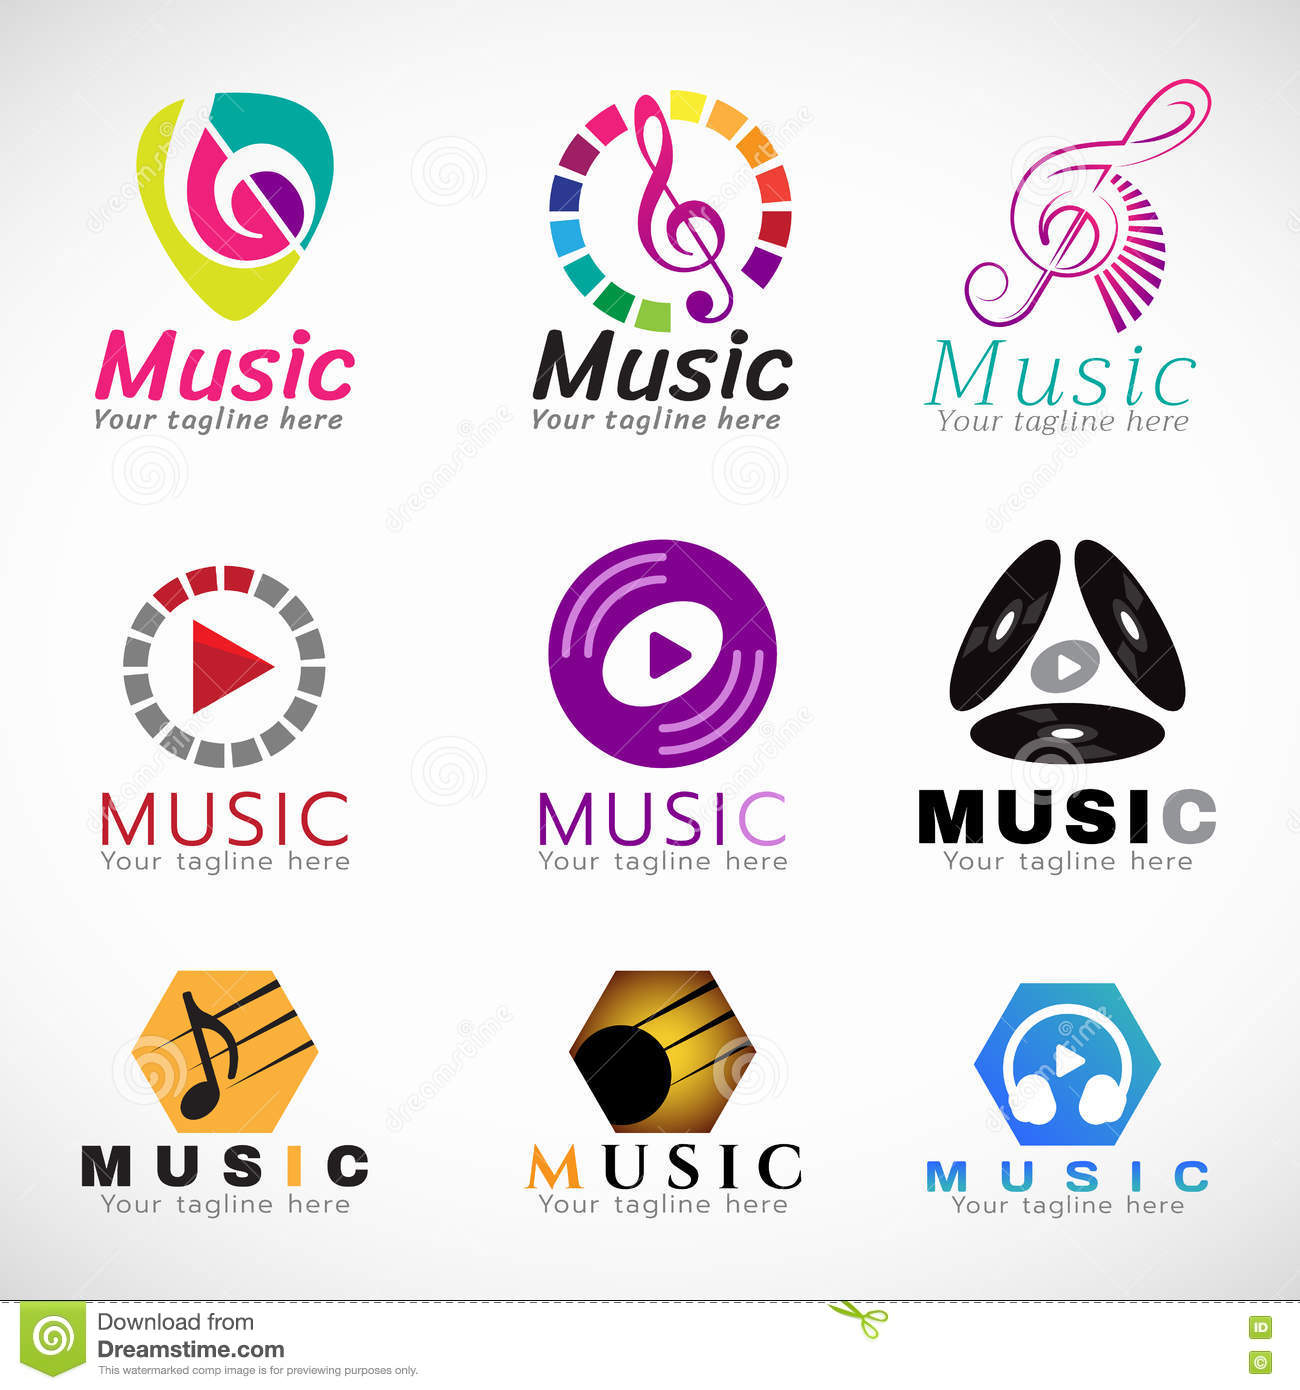 756725 further Sound Waves 1944178 moreover Stock Illustration Music Logo Vector Set Design Music Key Sign Cd Play Sign Headphone Sign Image74865882 moreover Ultrasound 20AM 20Transmitter besides Redneck Projects Gadgets. on free tube radio plans